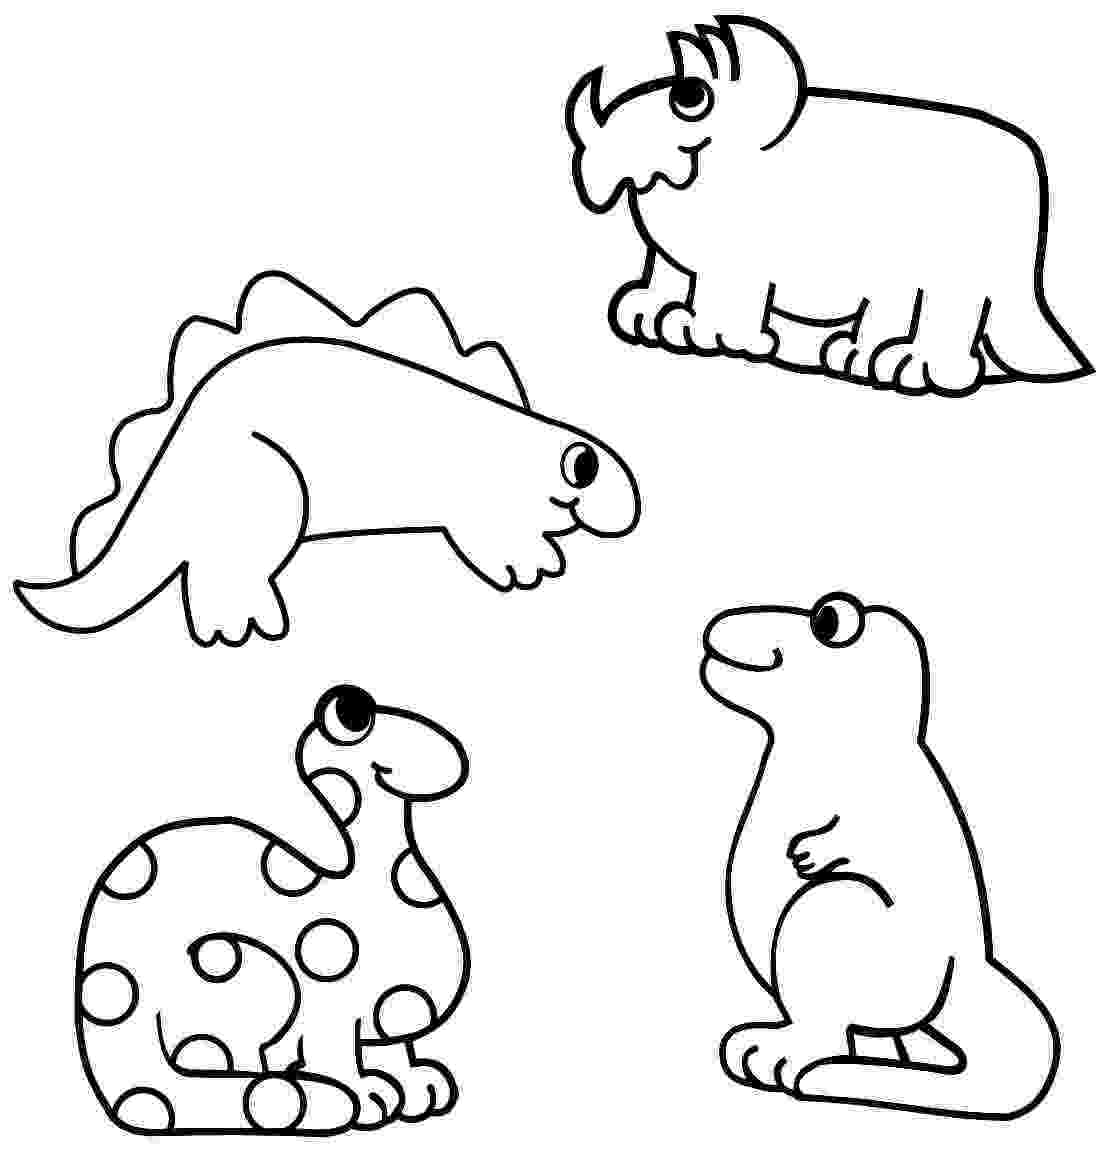 dinosaur coloring pages for preschoolers printable dinosaur coloring pages for kids cool2bkids dinosaur for pages coloring preschoolers